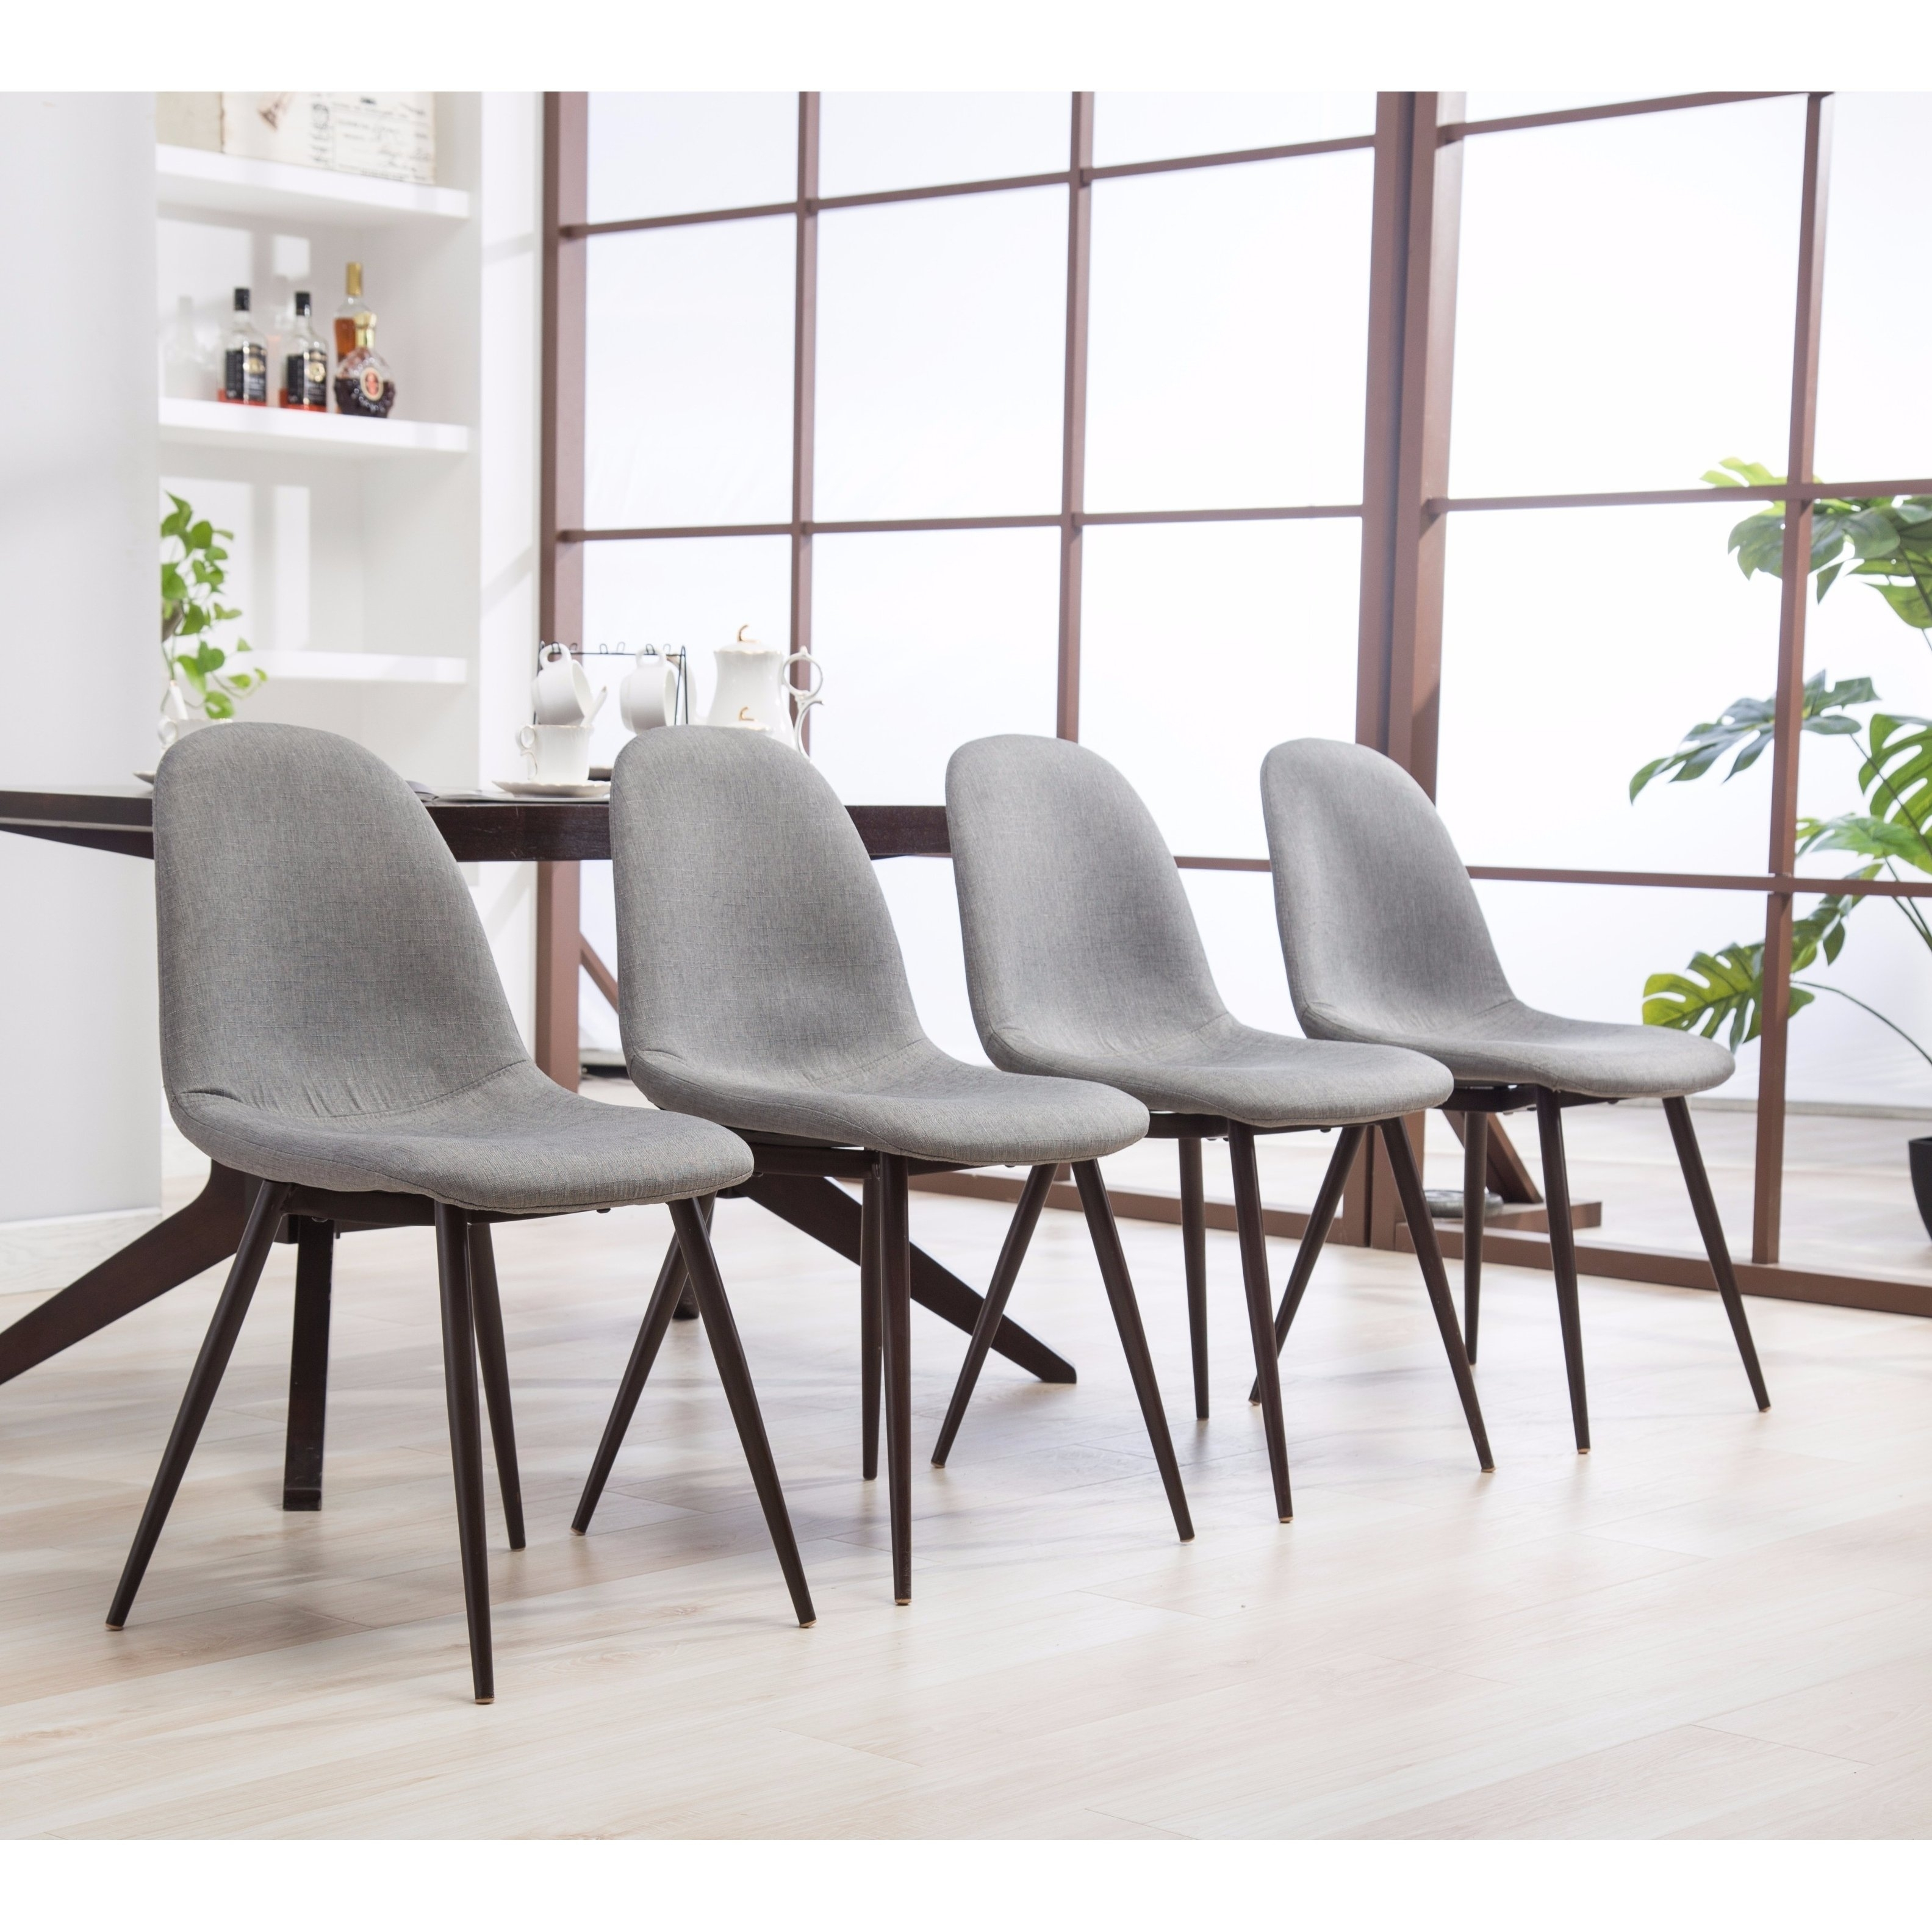 Shop Lassan Modern Contemporary Blue Fabric Dining Chairs, Set Of 4 Within Recent Caden 6 Piece Dining Sets With Upholstered Side Chair (View 11 of 20)